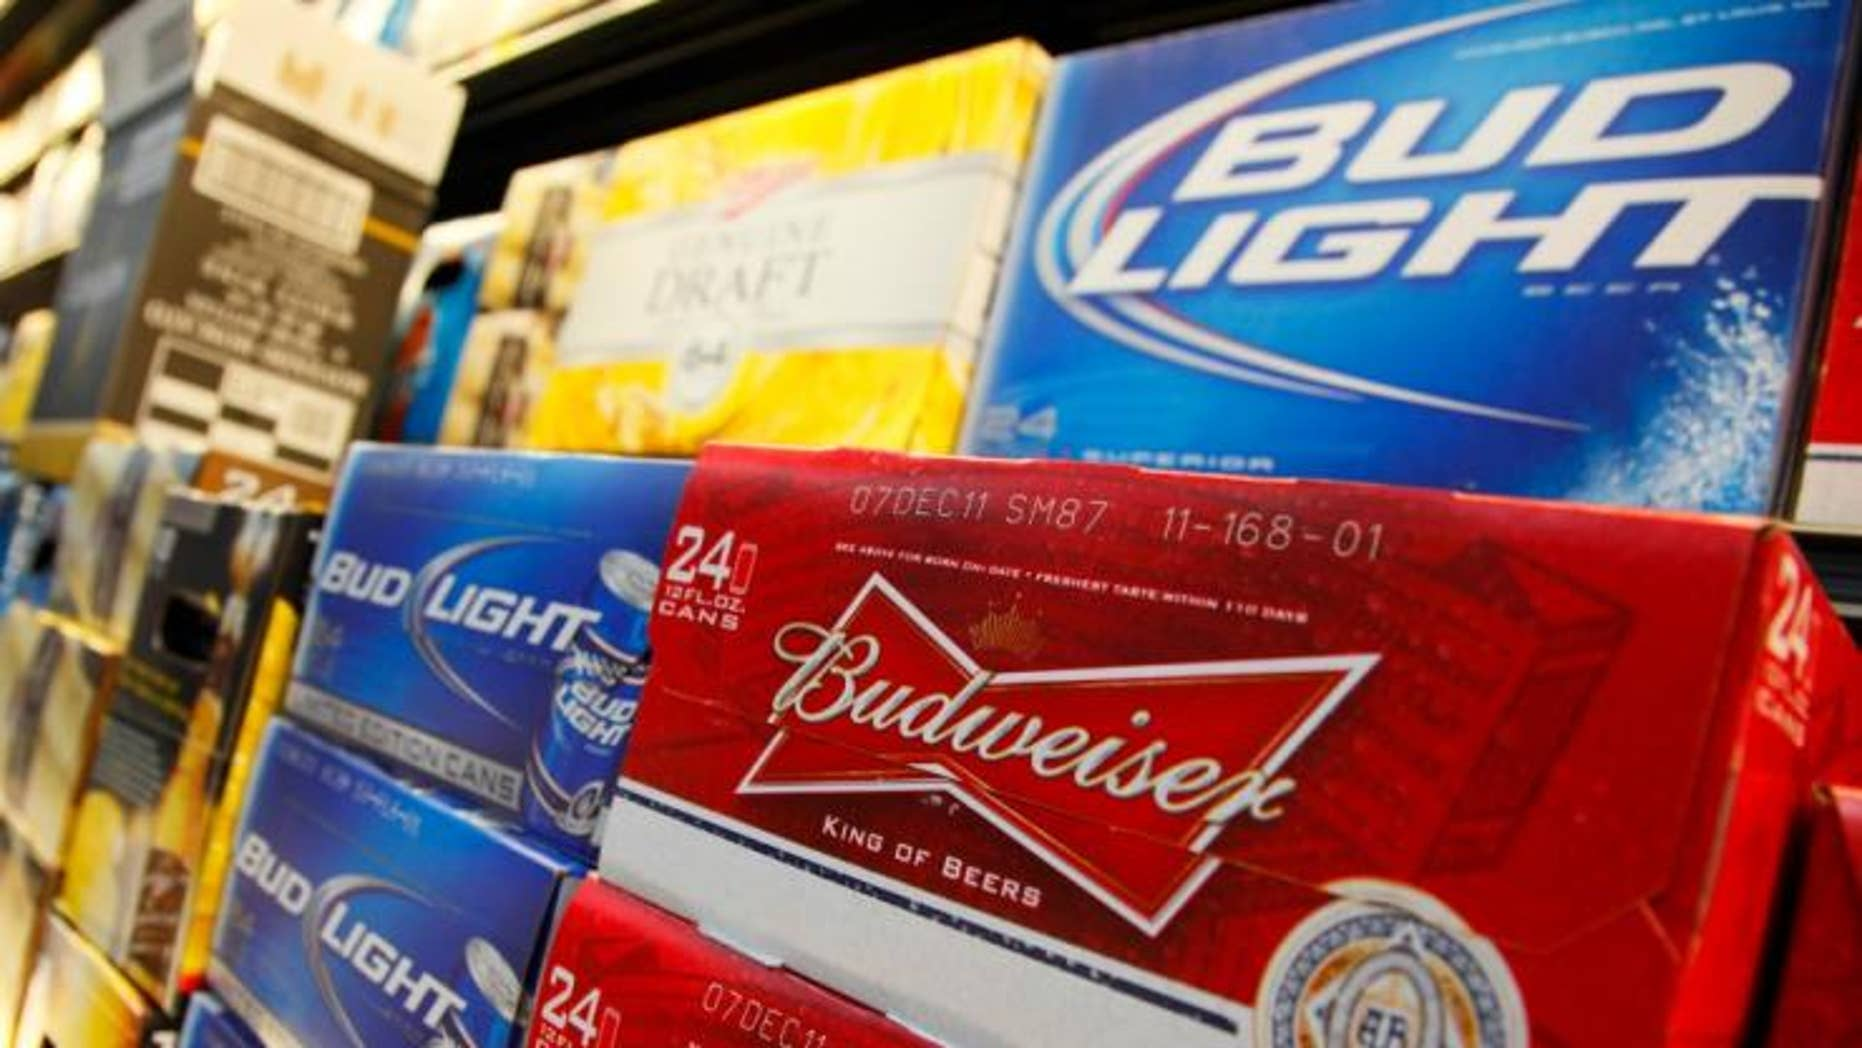 Bud Light's 'Up For Whatever' campaign has been accused of promoting unwanted sexual advances.